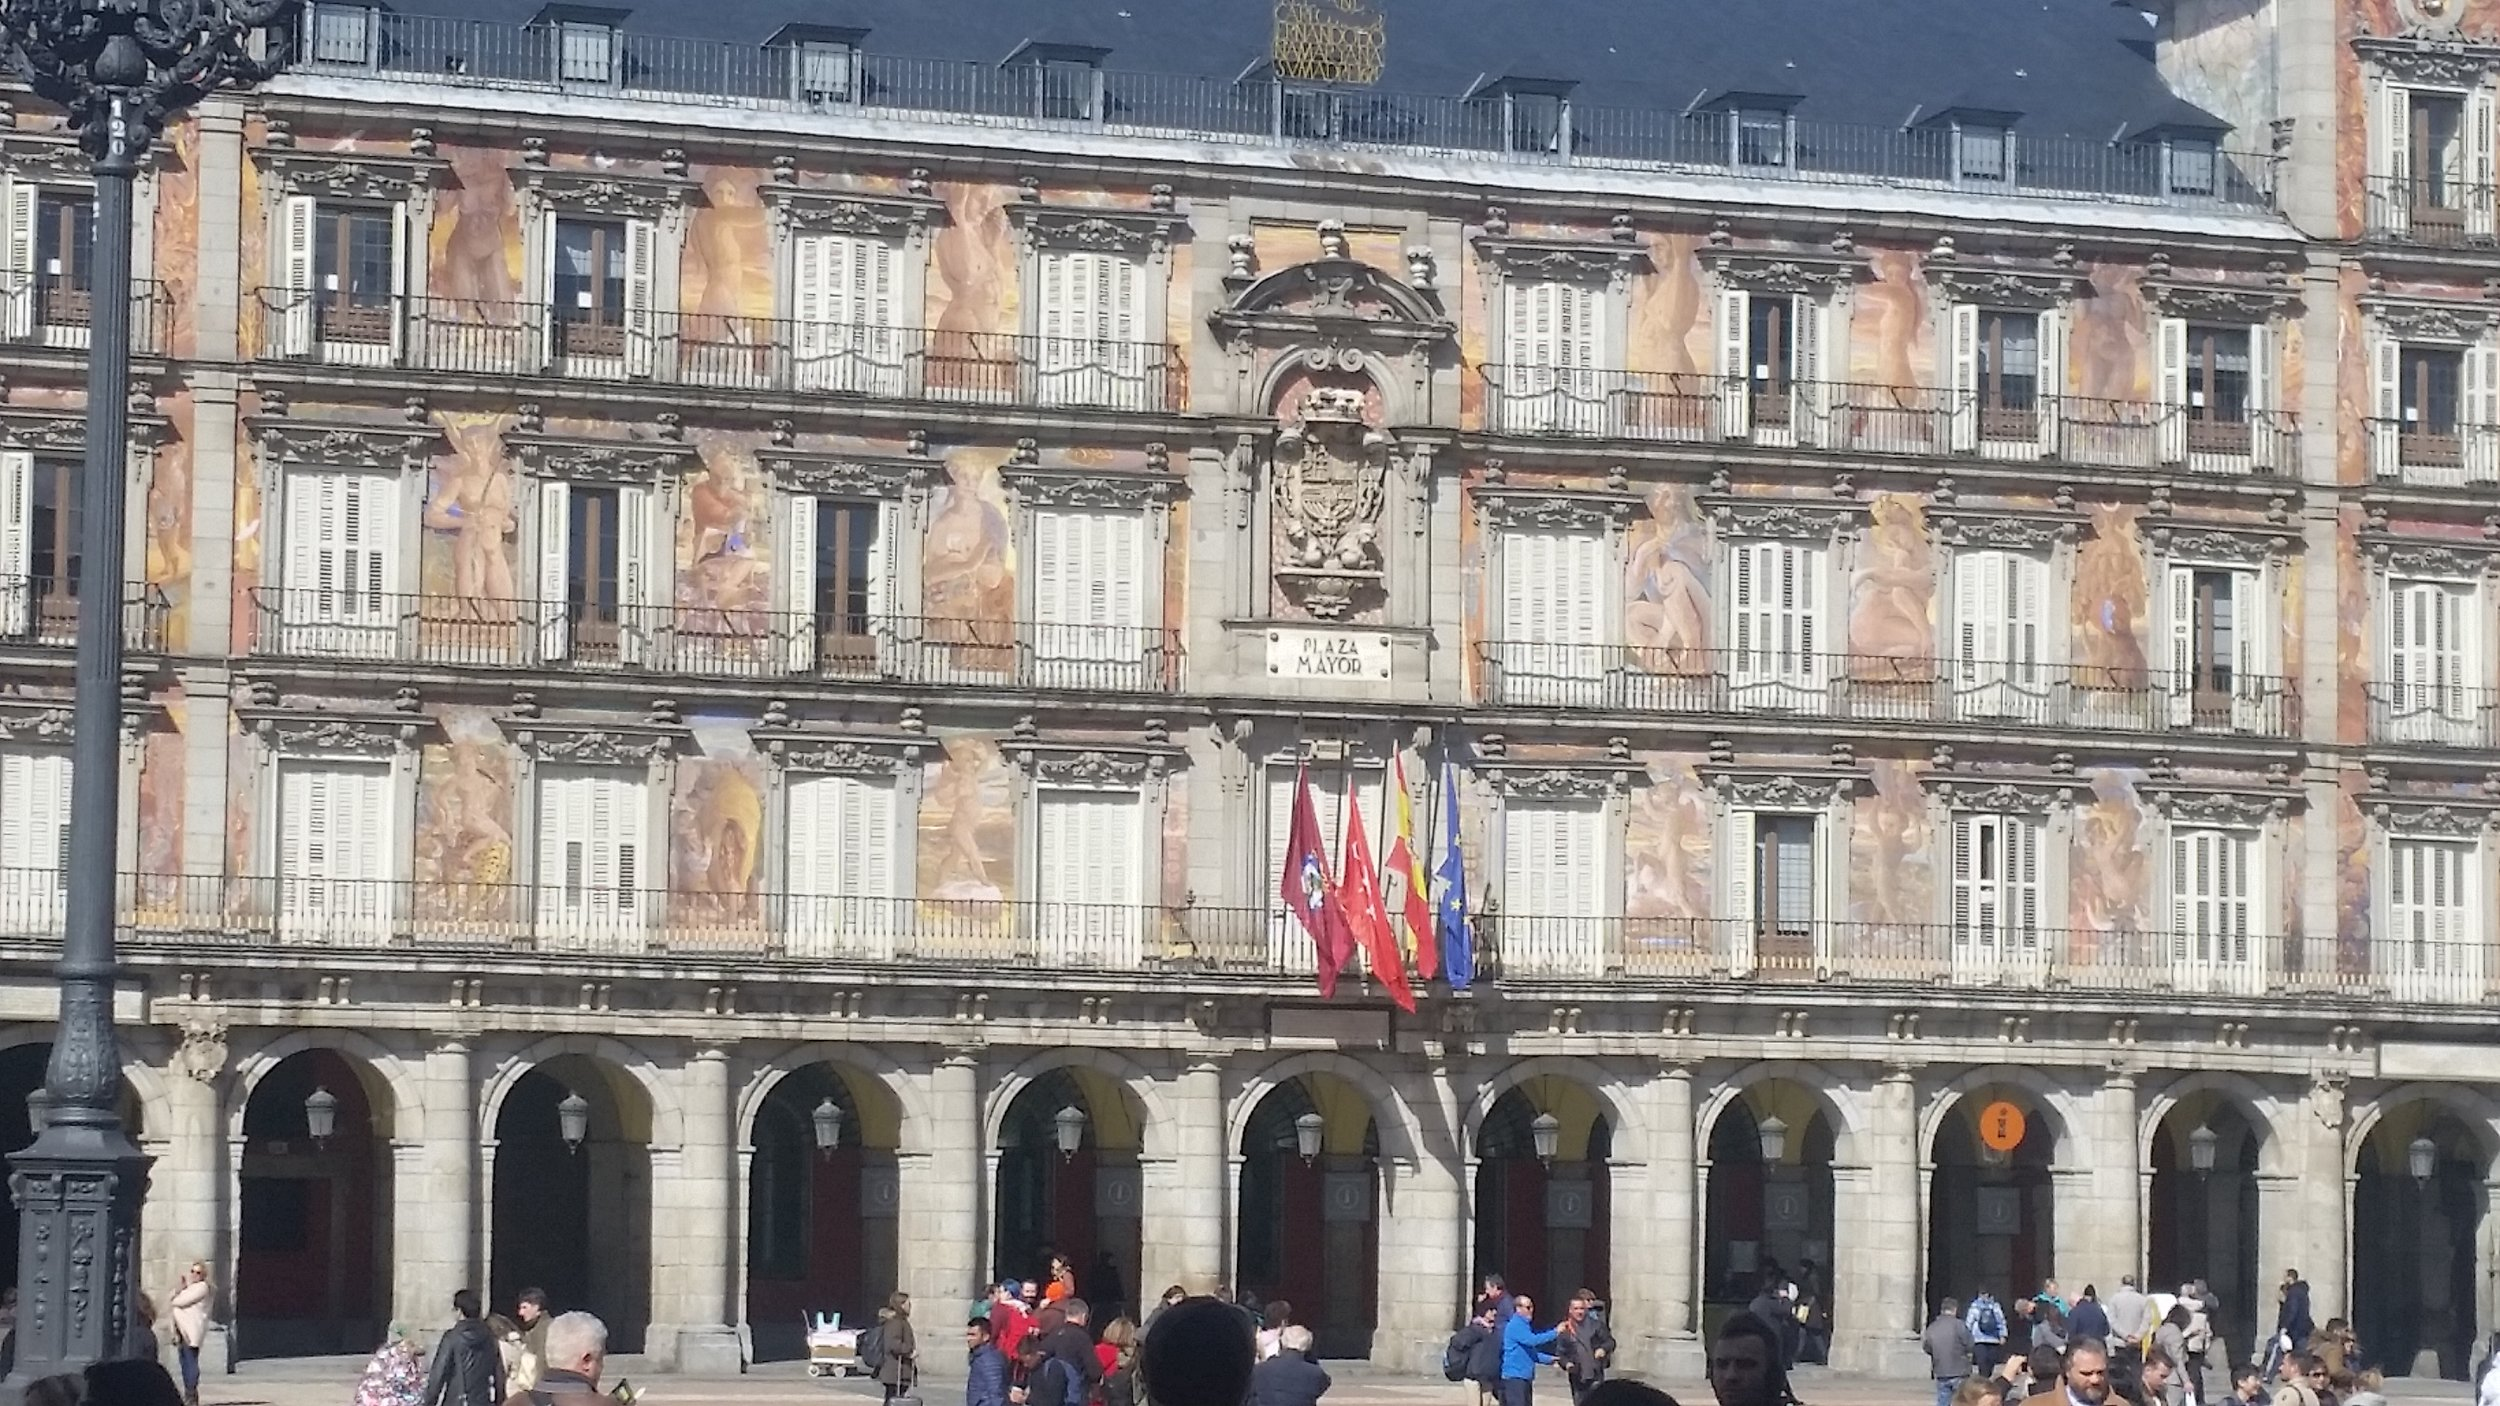 The Plaza Mayor